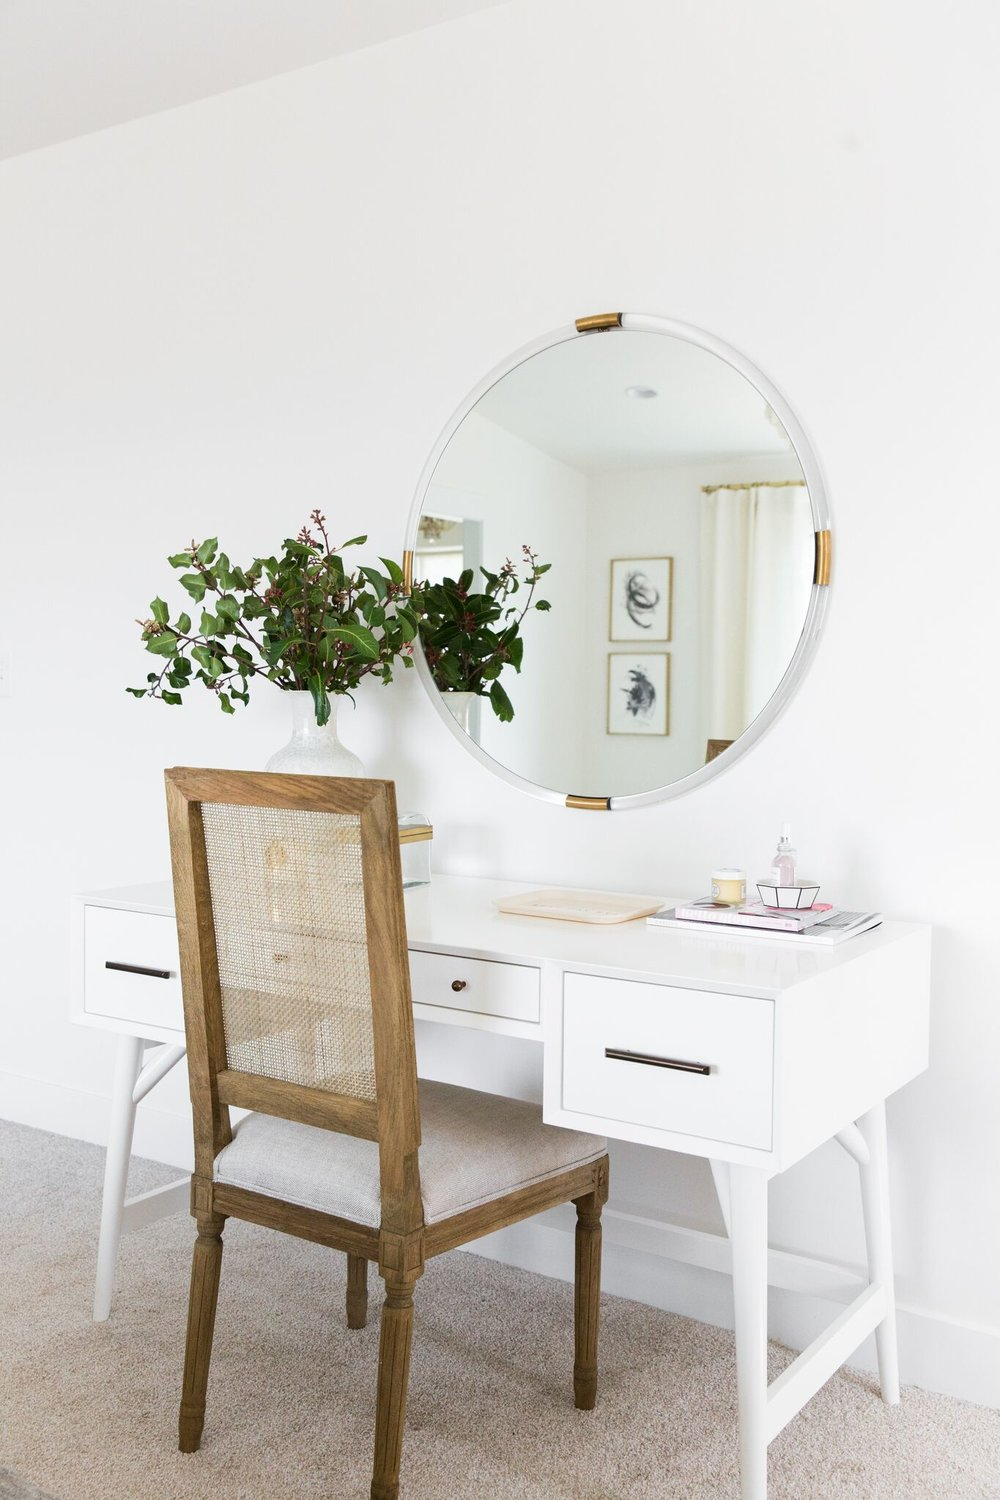 Simple wooden chair with white vanity